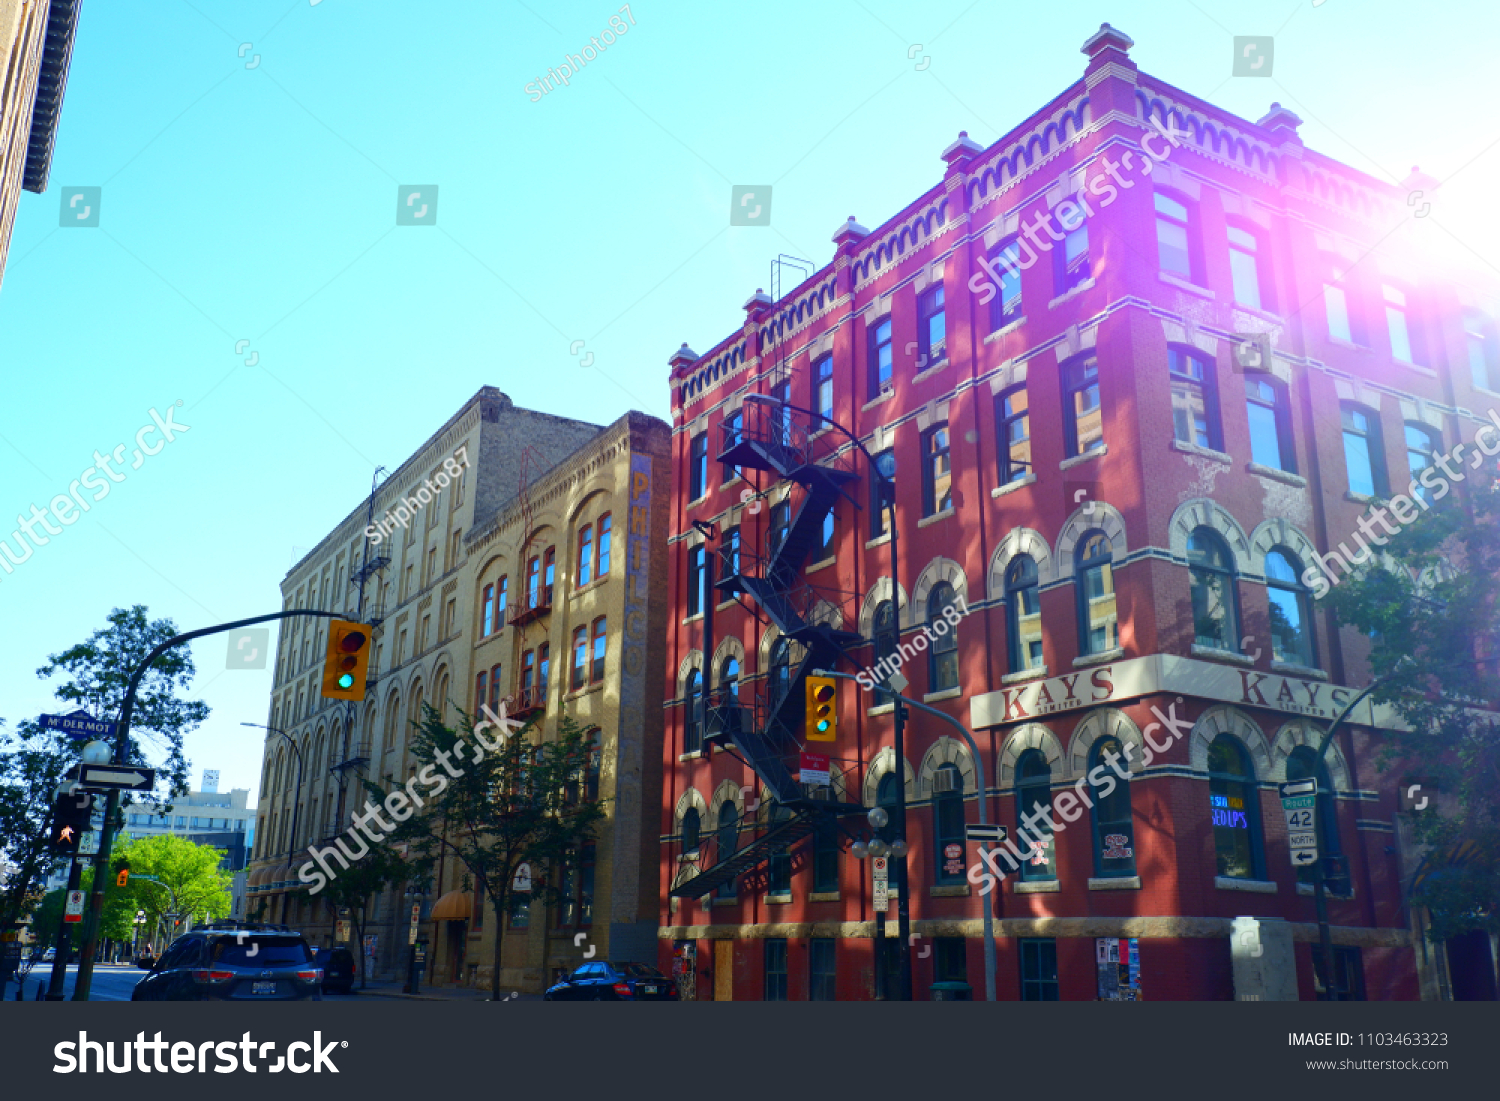 Outstanding of beautiful architecture of building at downtown Winnipeg  during summer. Winnipeg Manitoba Canada.